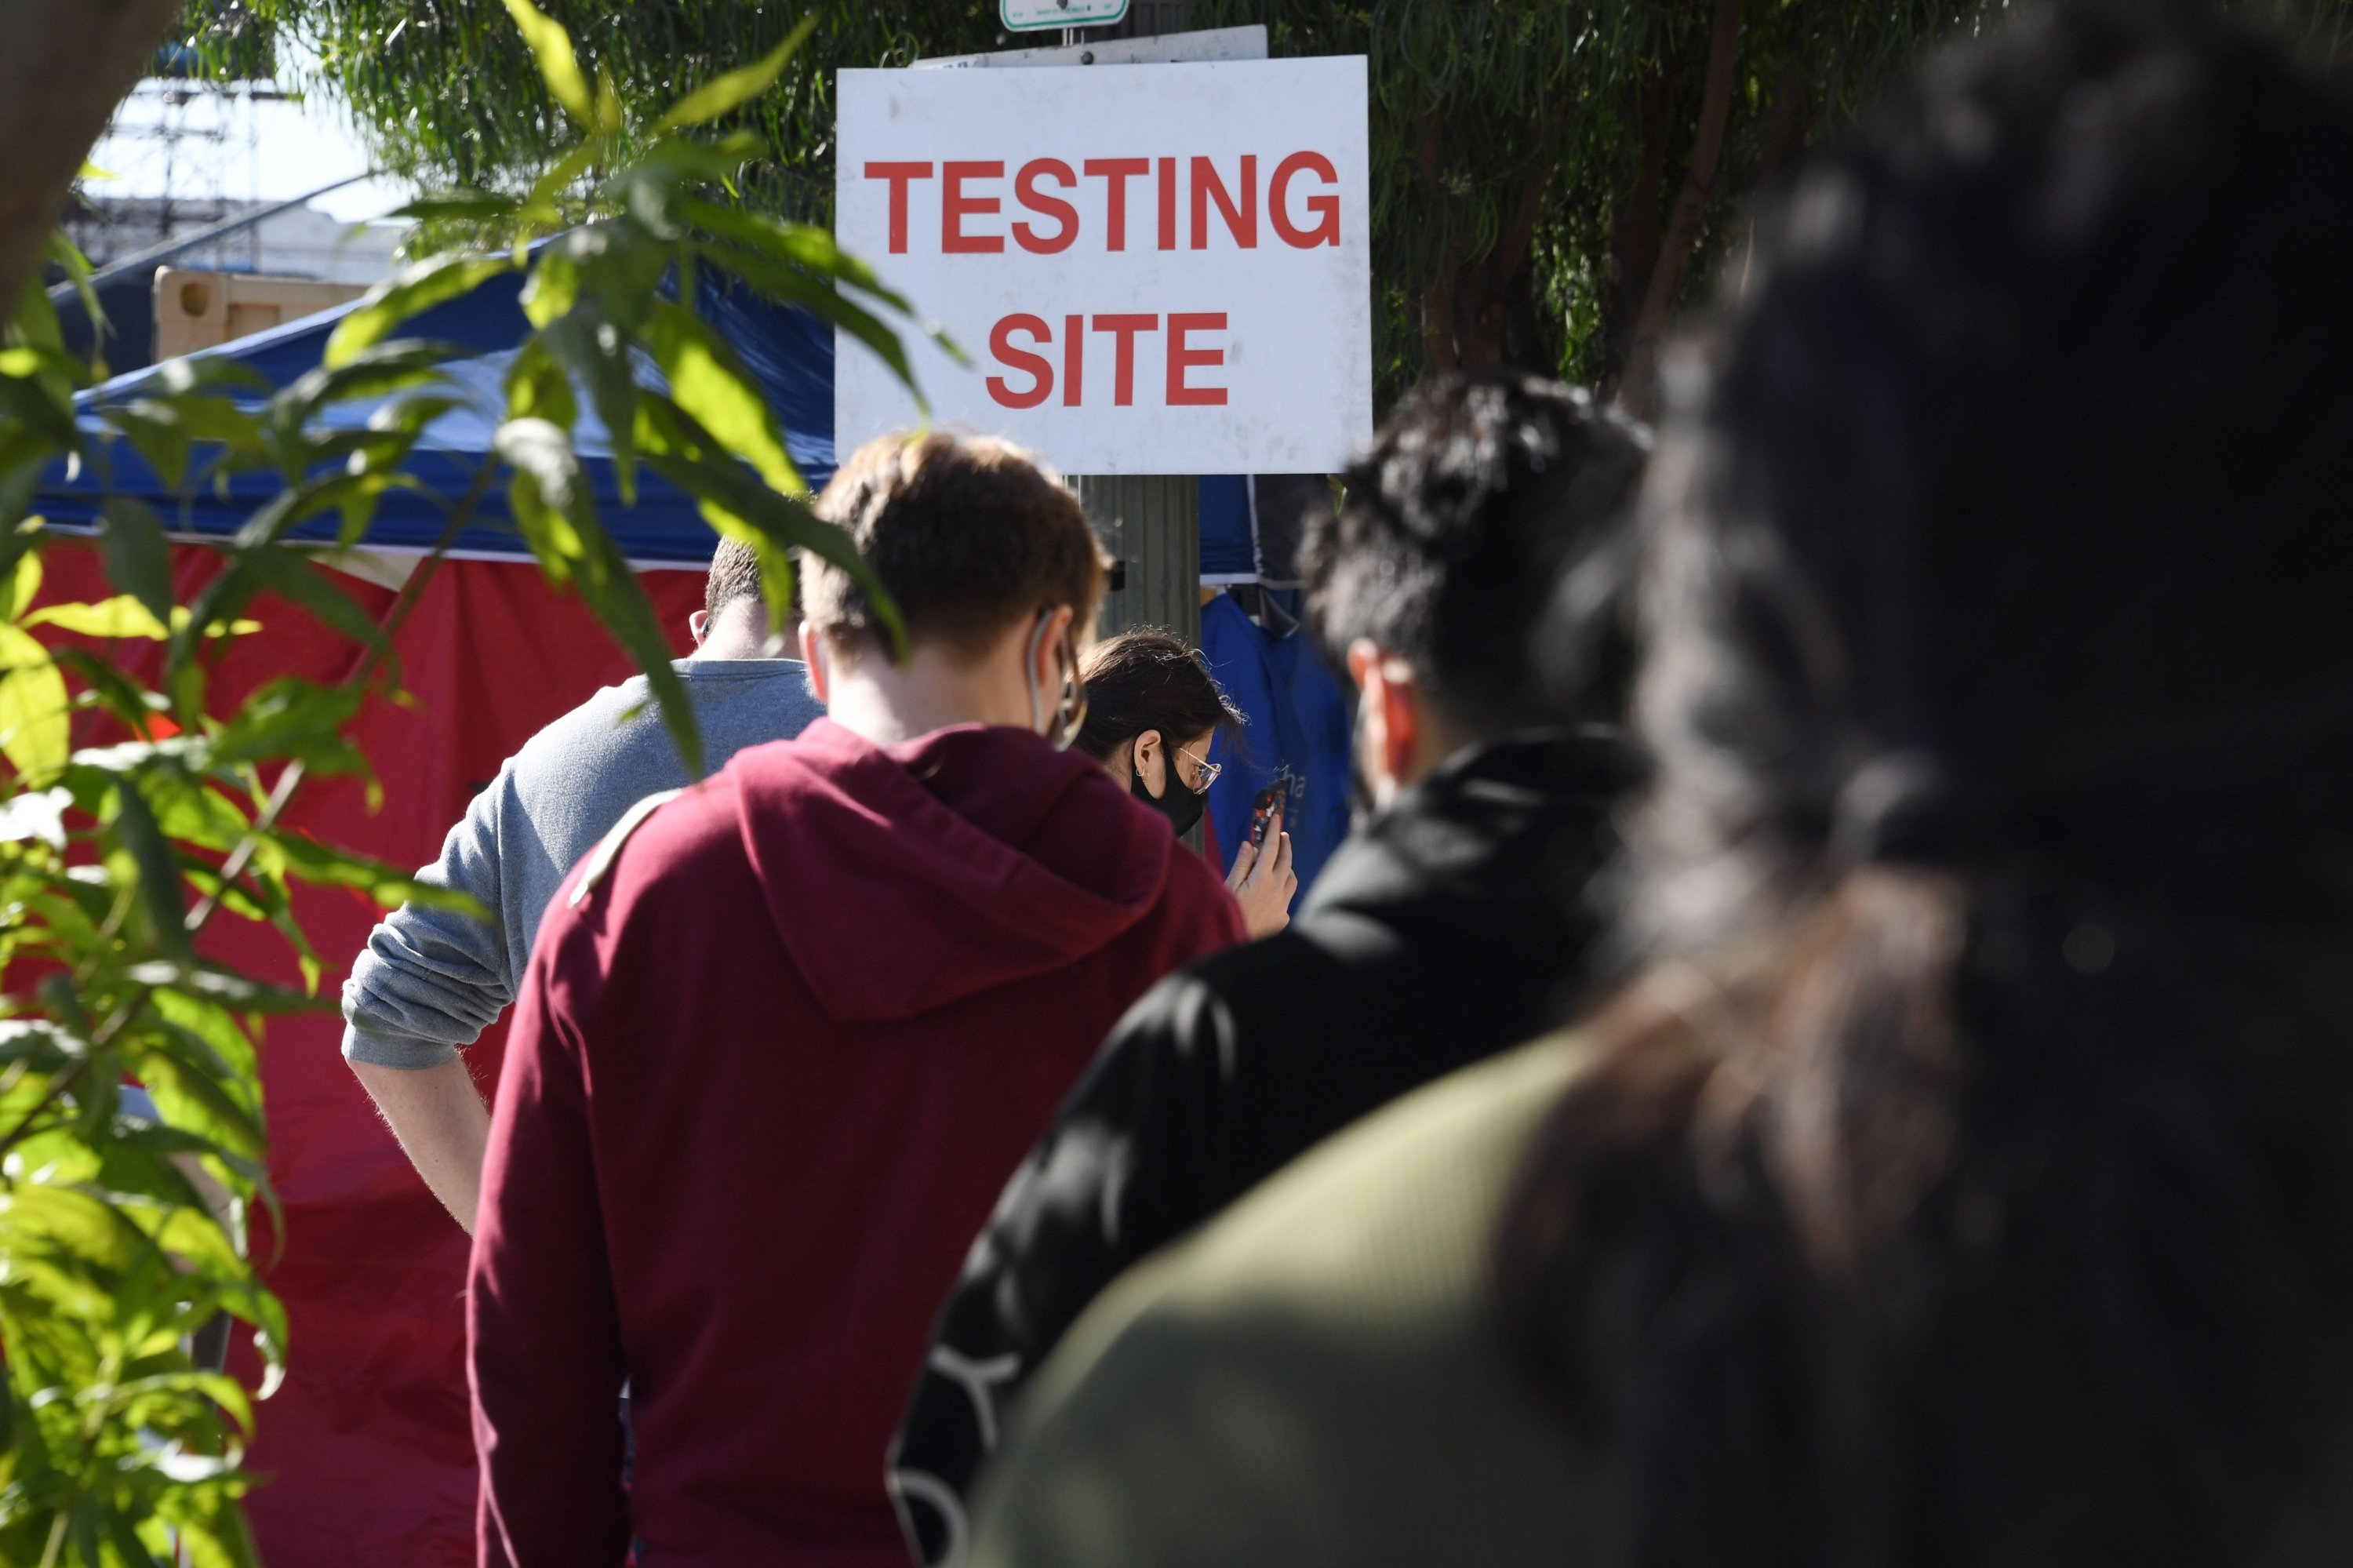 Des gens font la queue pour se faire tester pour le COVID-19 à Los Angeles, Californie, le 9 novembre 2020 (AFP Photo)